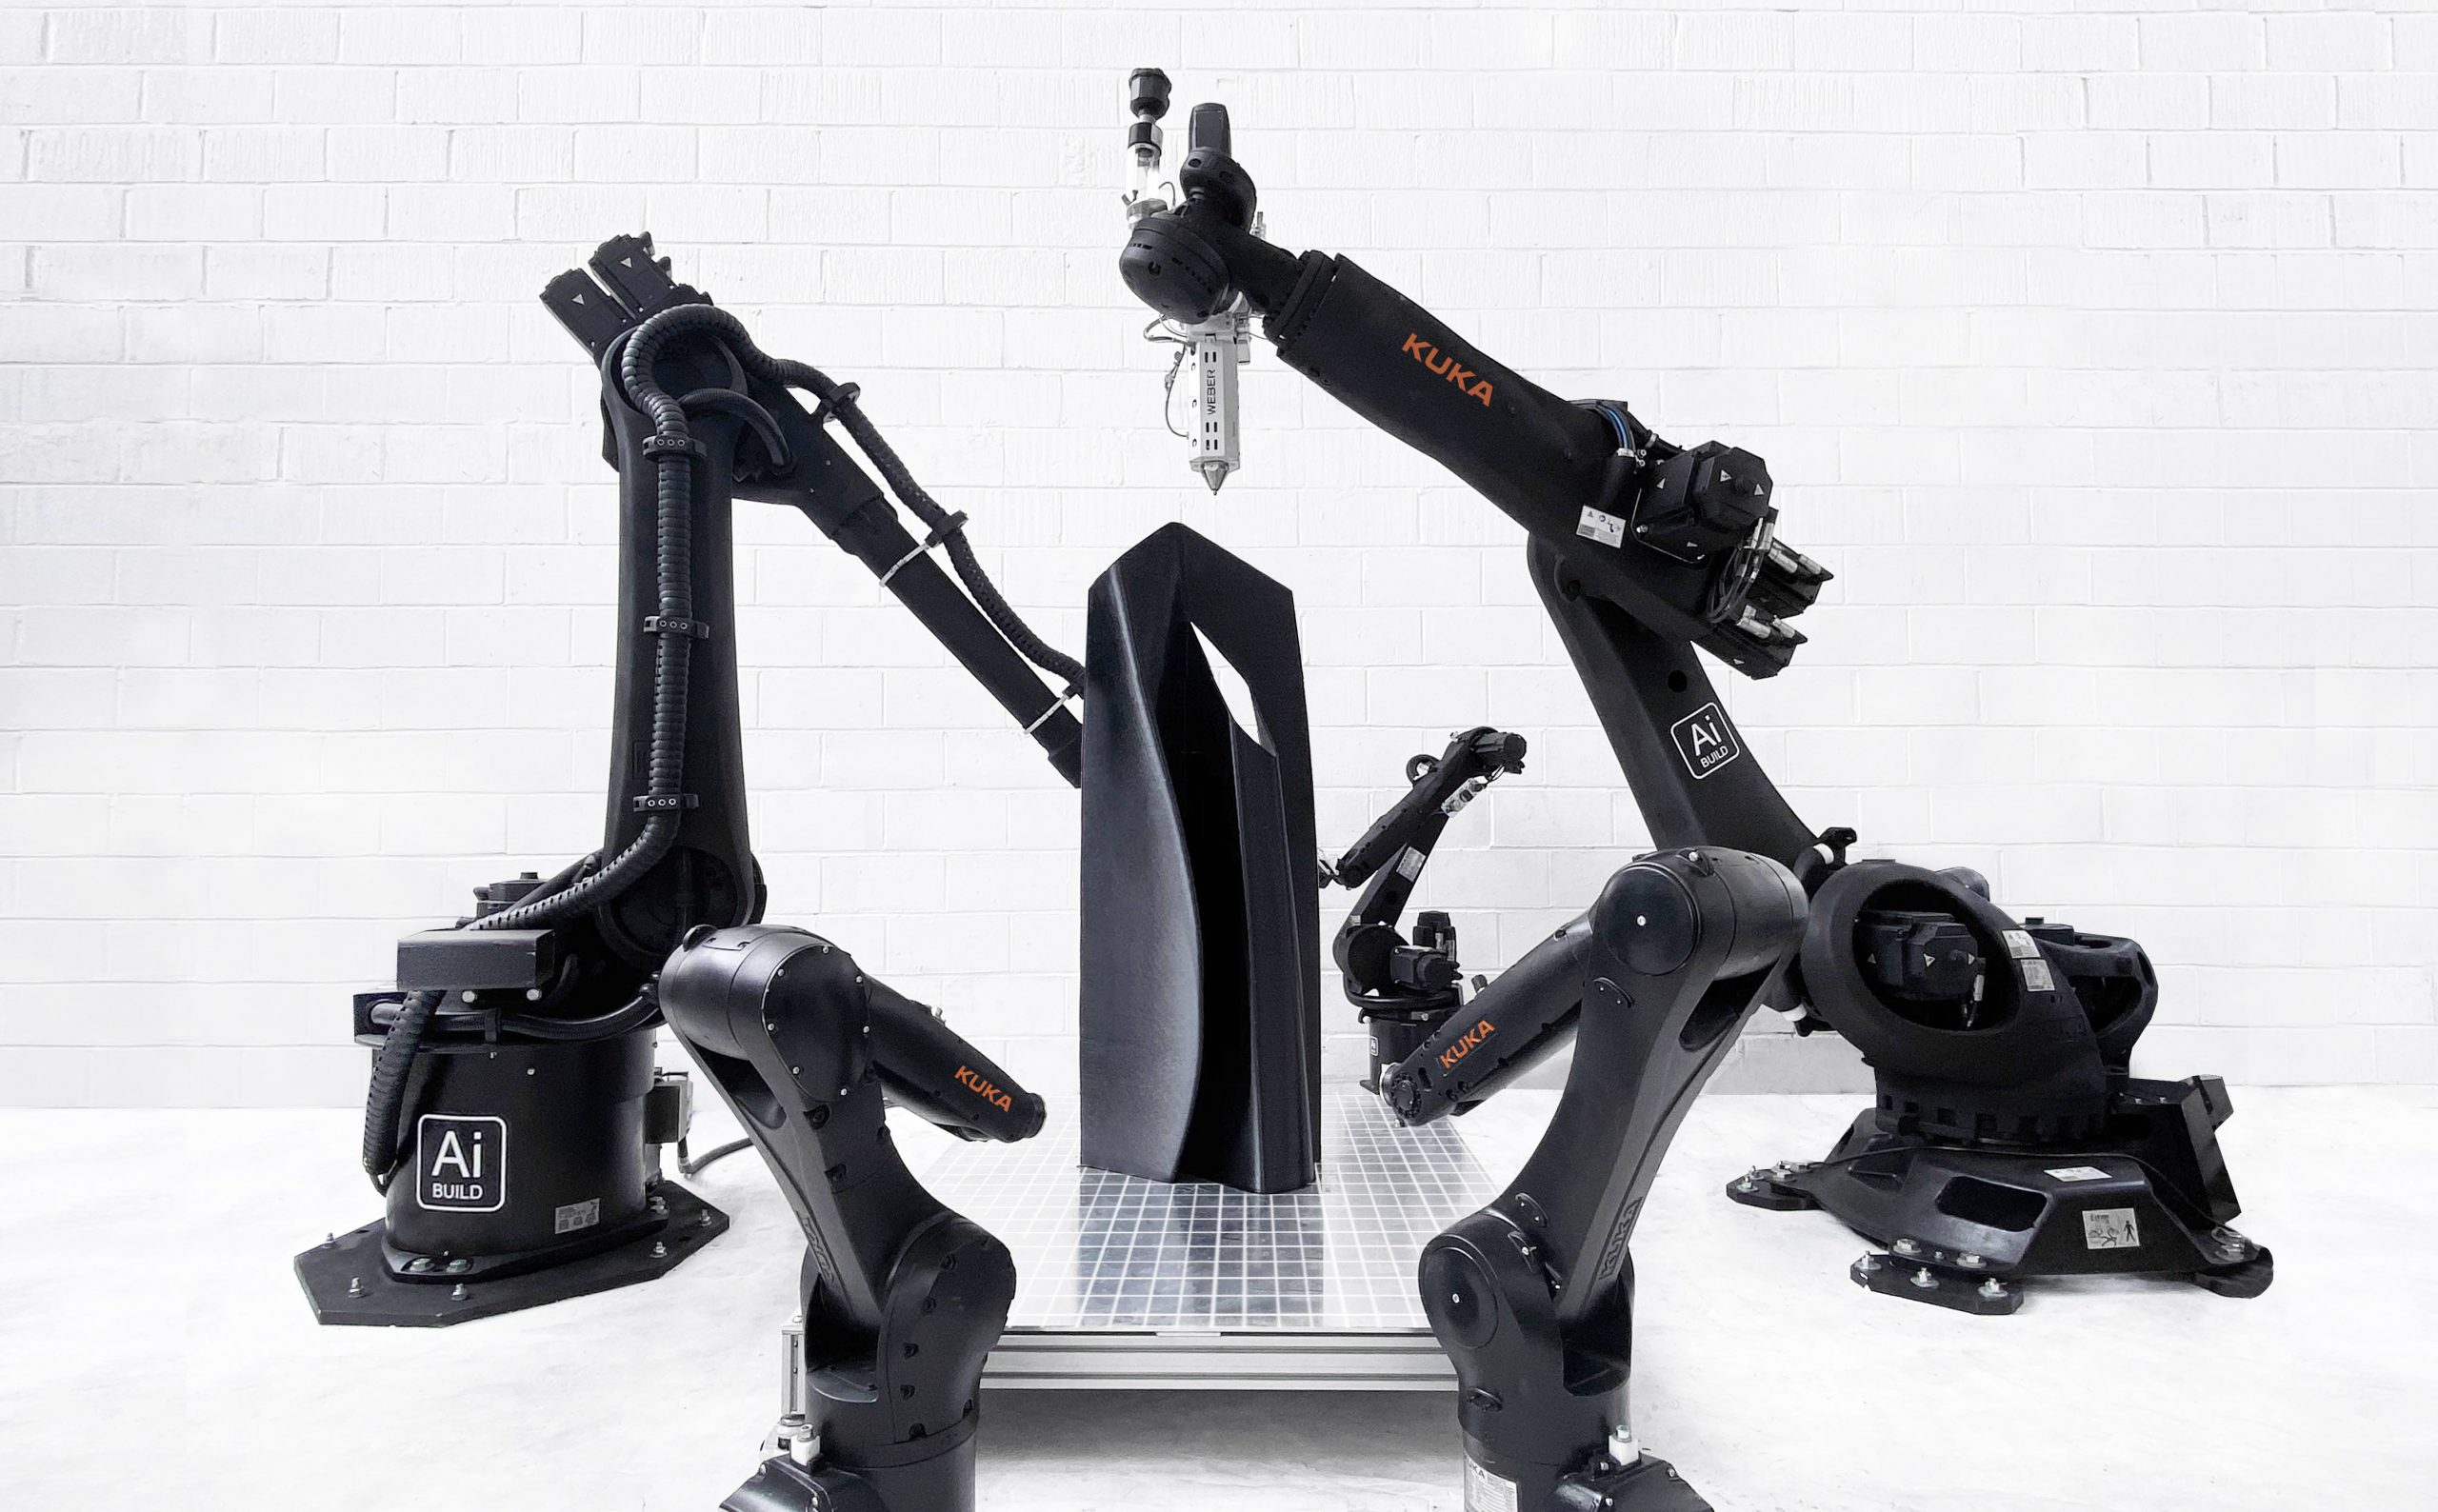 Ai Build's platform including its AiSync software, AiMaker robotic extruder, and AiCell heated chamber enclosure.